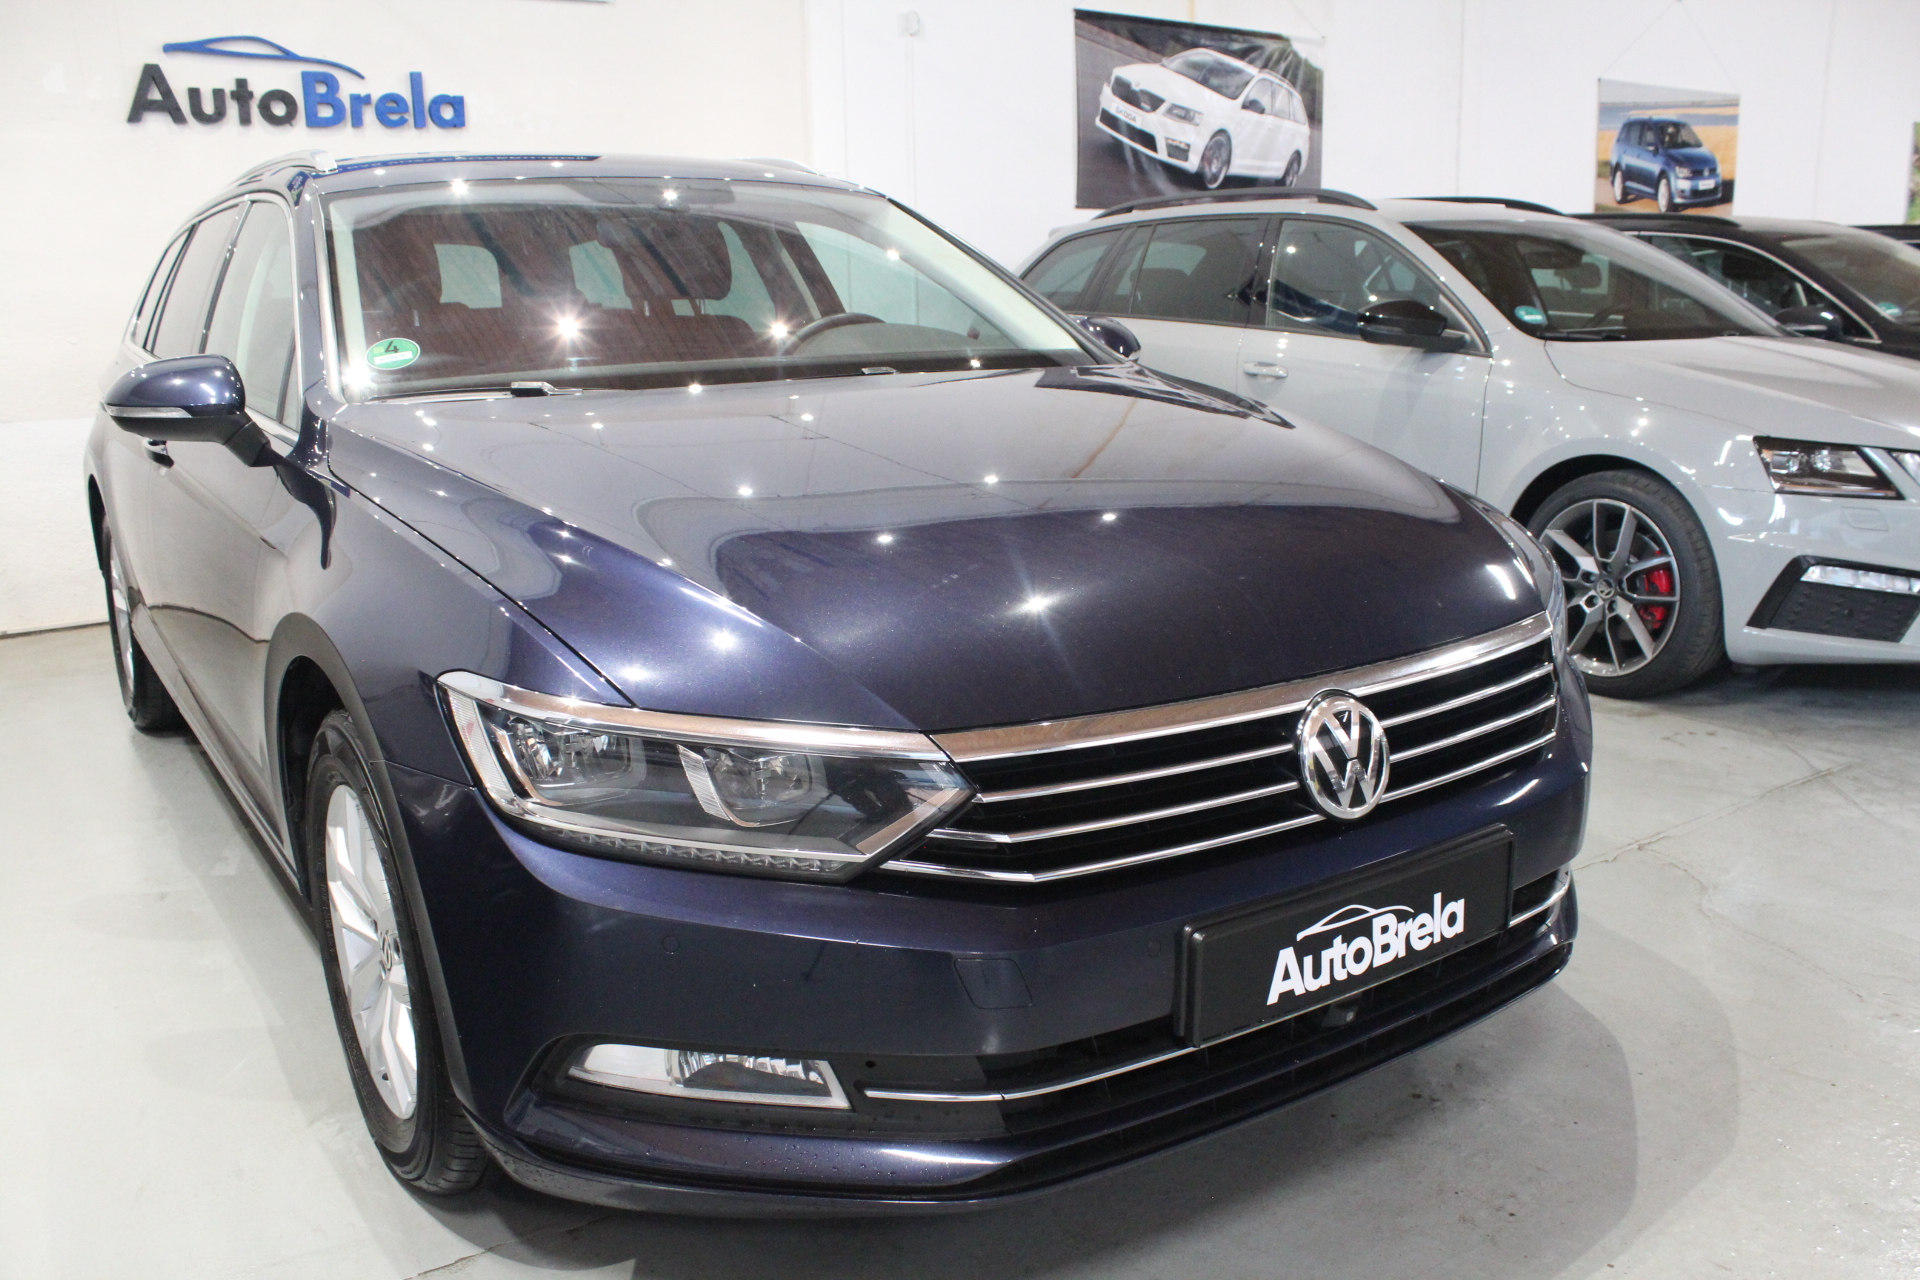 WV Passat B8 2.0 TDI DSG Highline Active Info display 12″  Area View 360° - AutoBrela obrázek